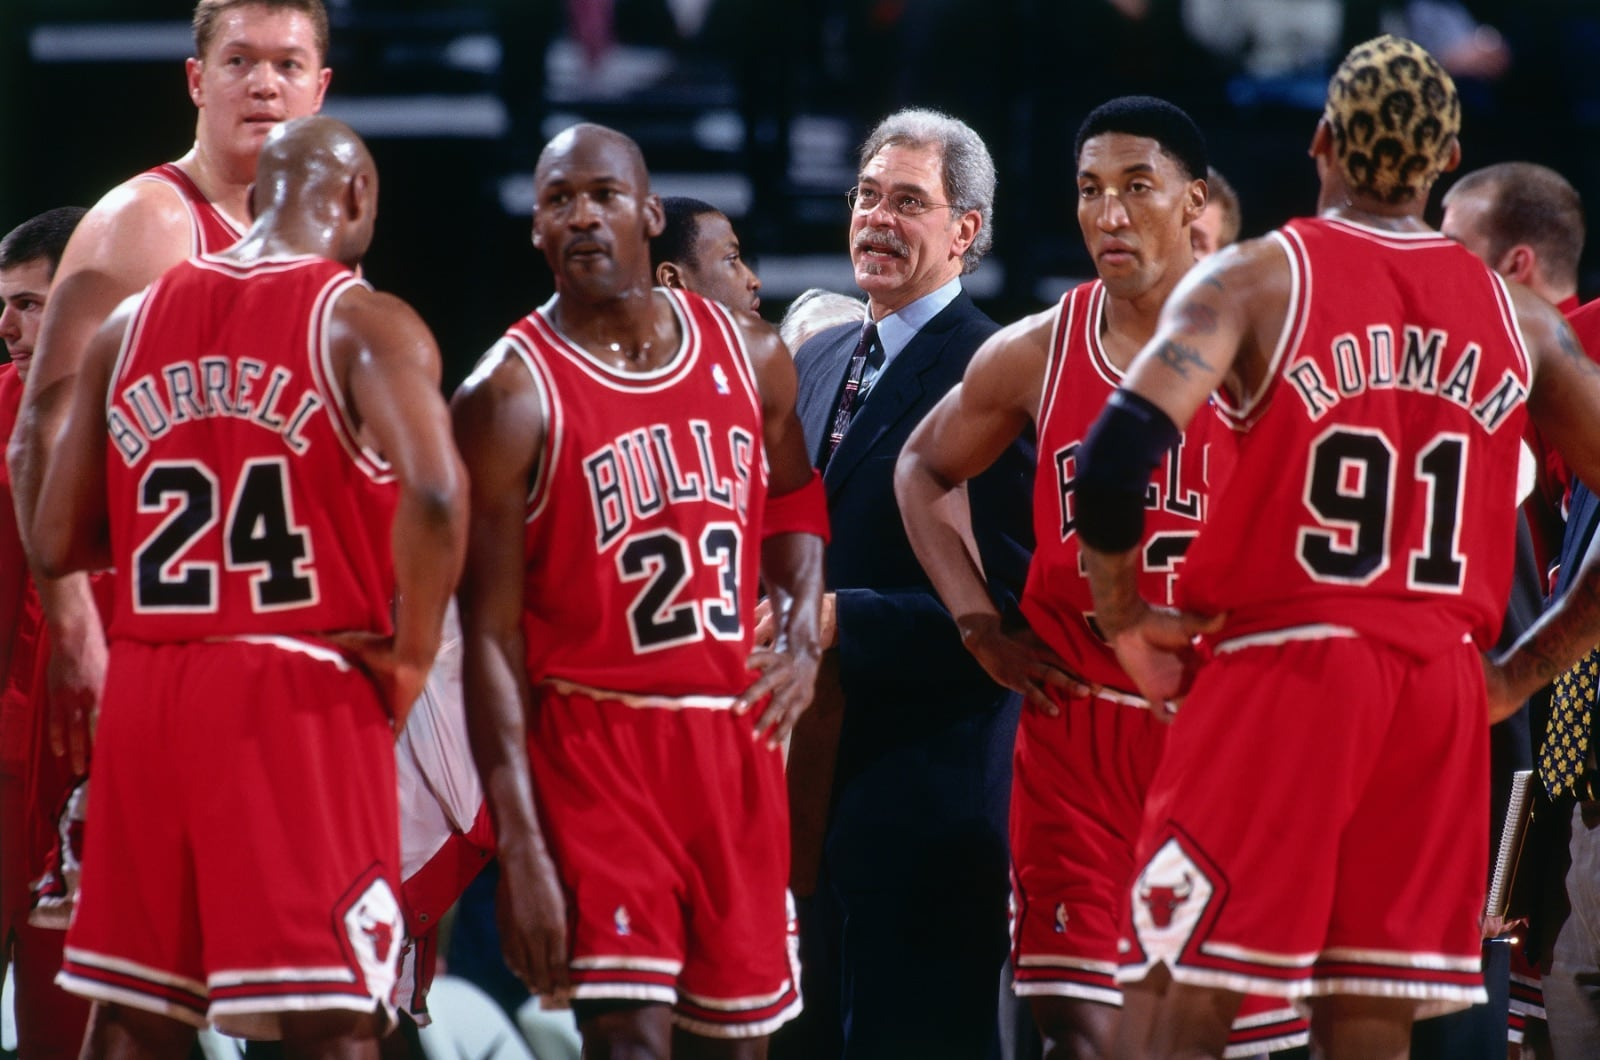 1998 Bulls team huddles up before returning to play